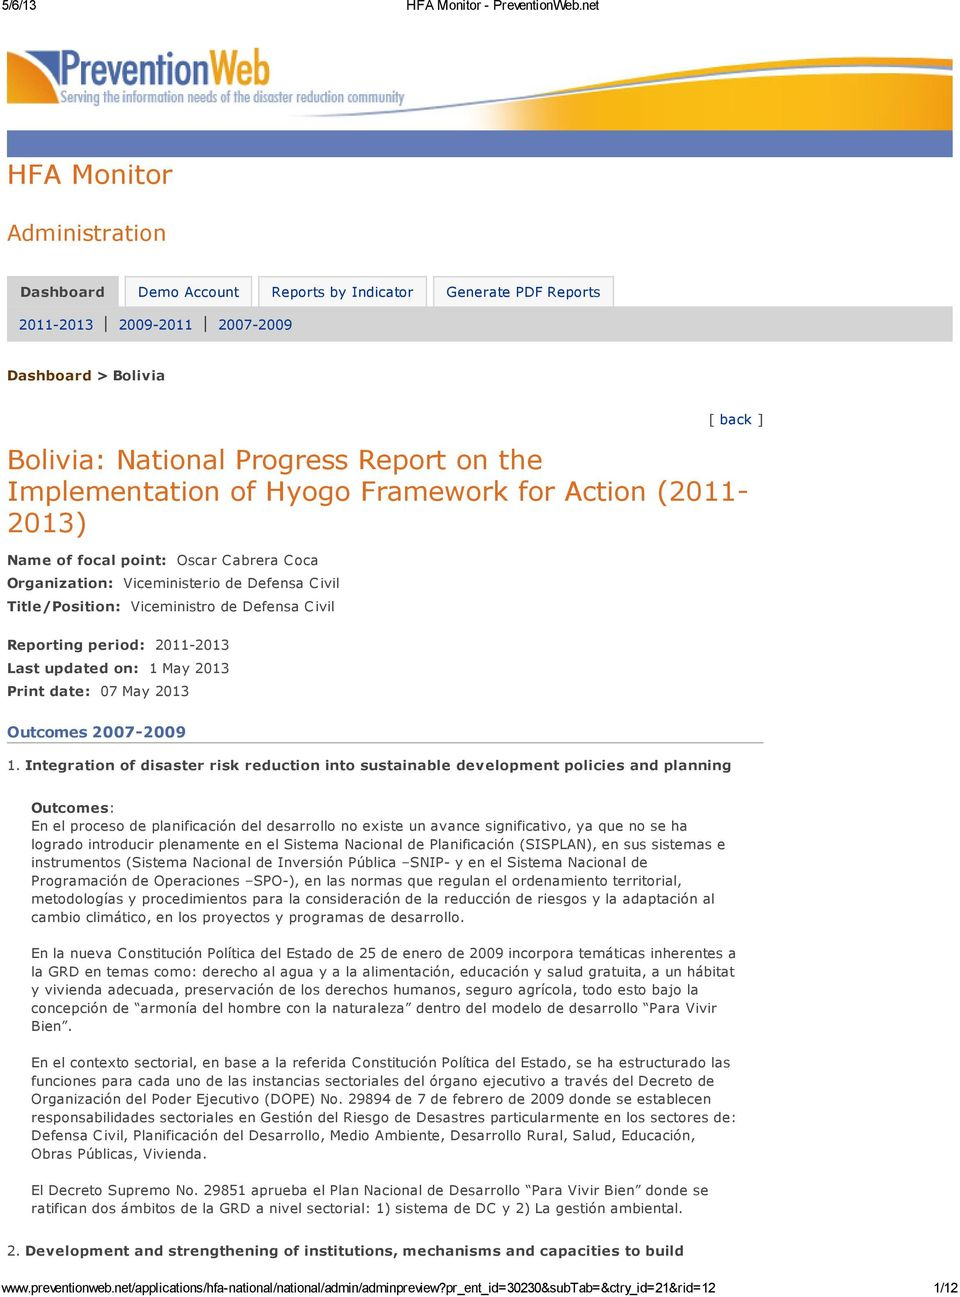 Implementation of Hyogo Framework for Action (2011-201) Name of focal point: Oscar Cabrera Coca Organization: Viceministerio de Defensa Civil Title/Position: Viceministro de Defensa Civil Reporting